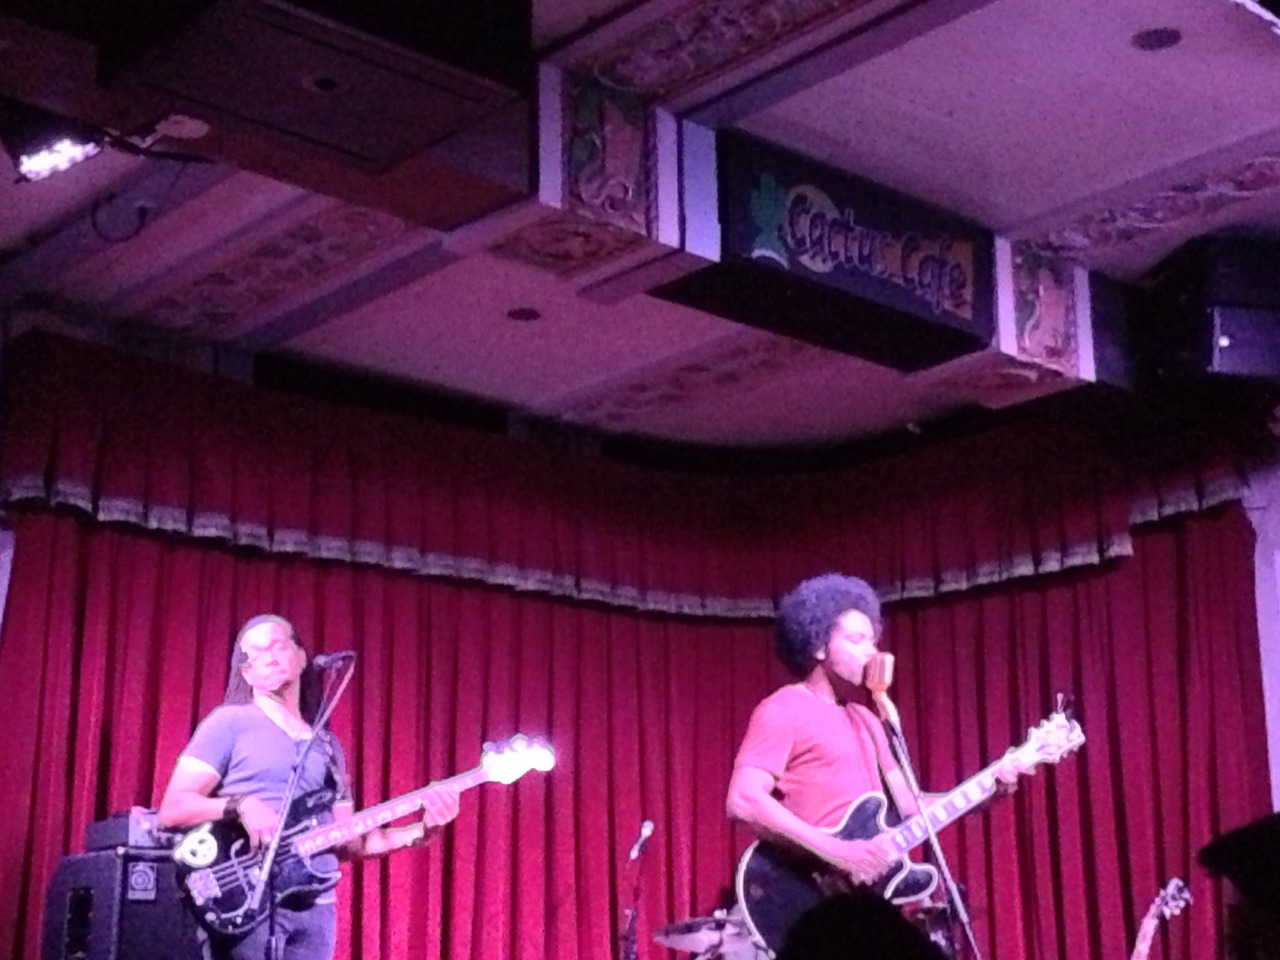 erina:  Saw Alex Cuba @ Cactus Cafe with elizs last night :)  SUCH A GREAT SHOW! Both Erin and I were dancing in our seats.